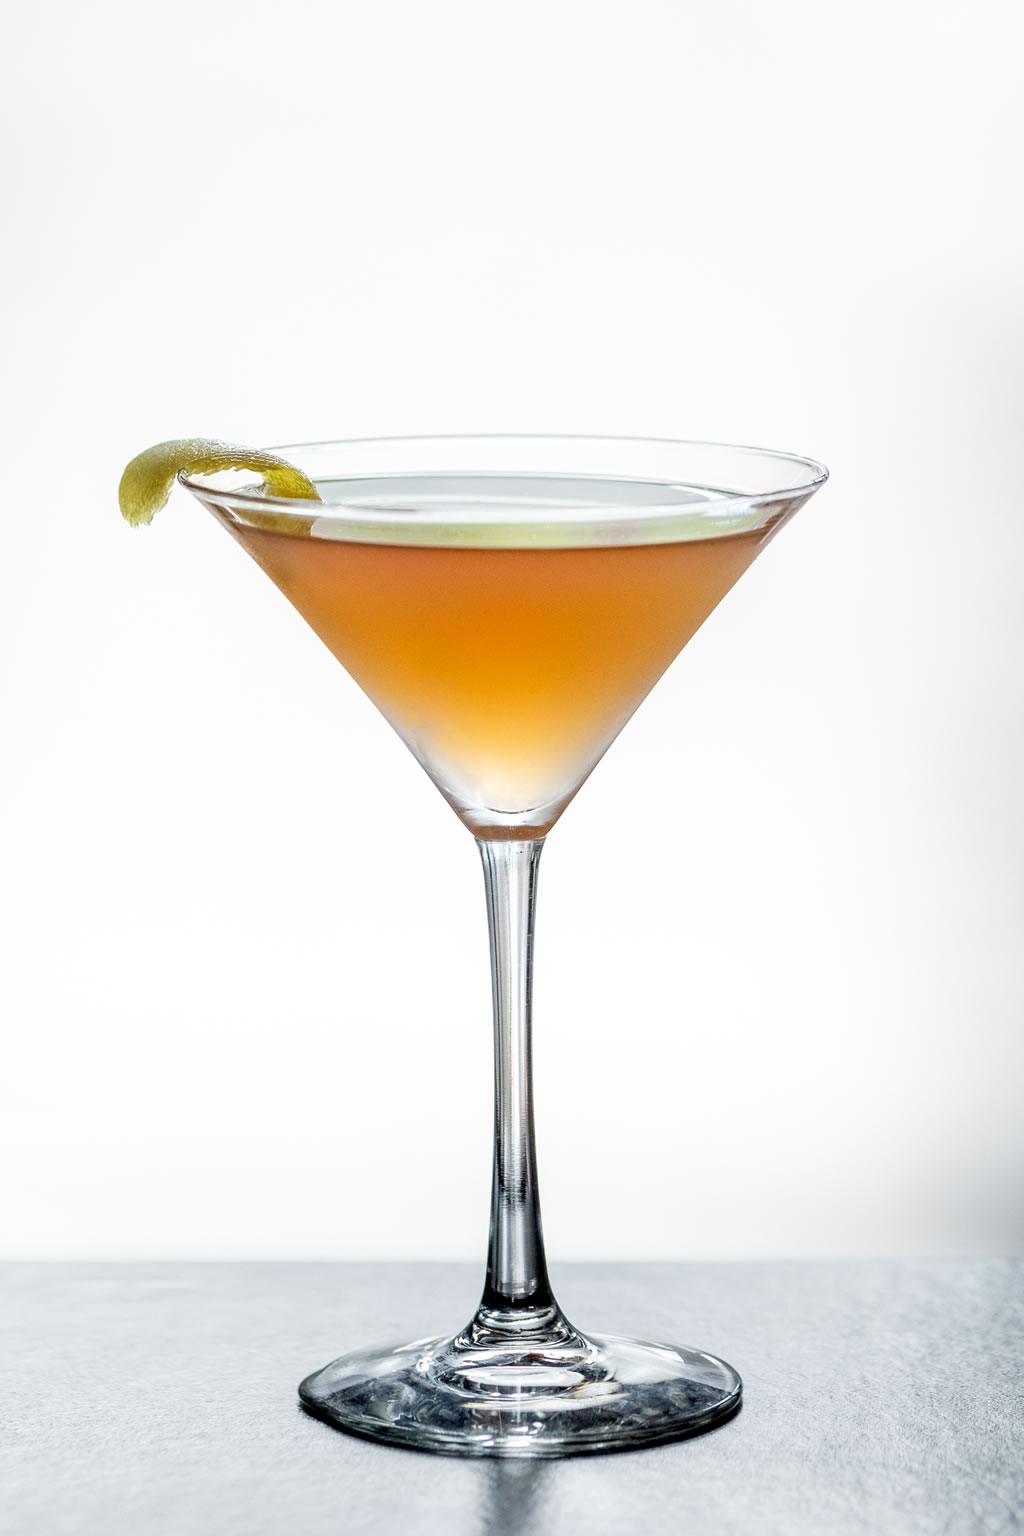 09-2019_OTOTO_Cocktail_Final Images_Web-Res_25